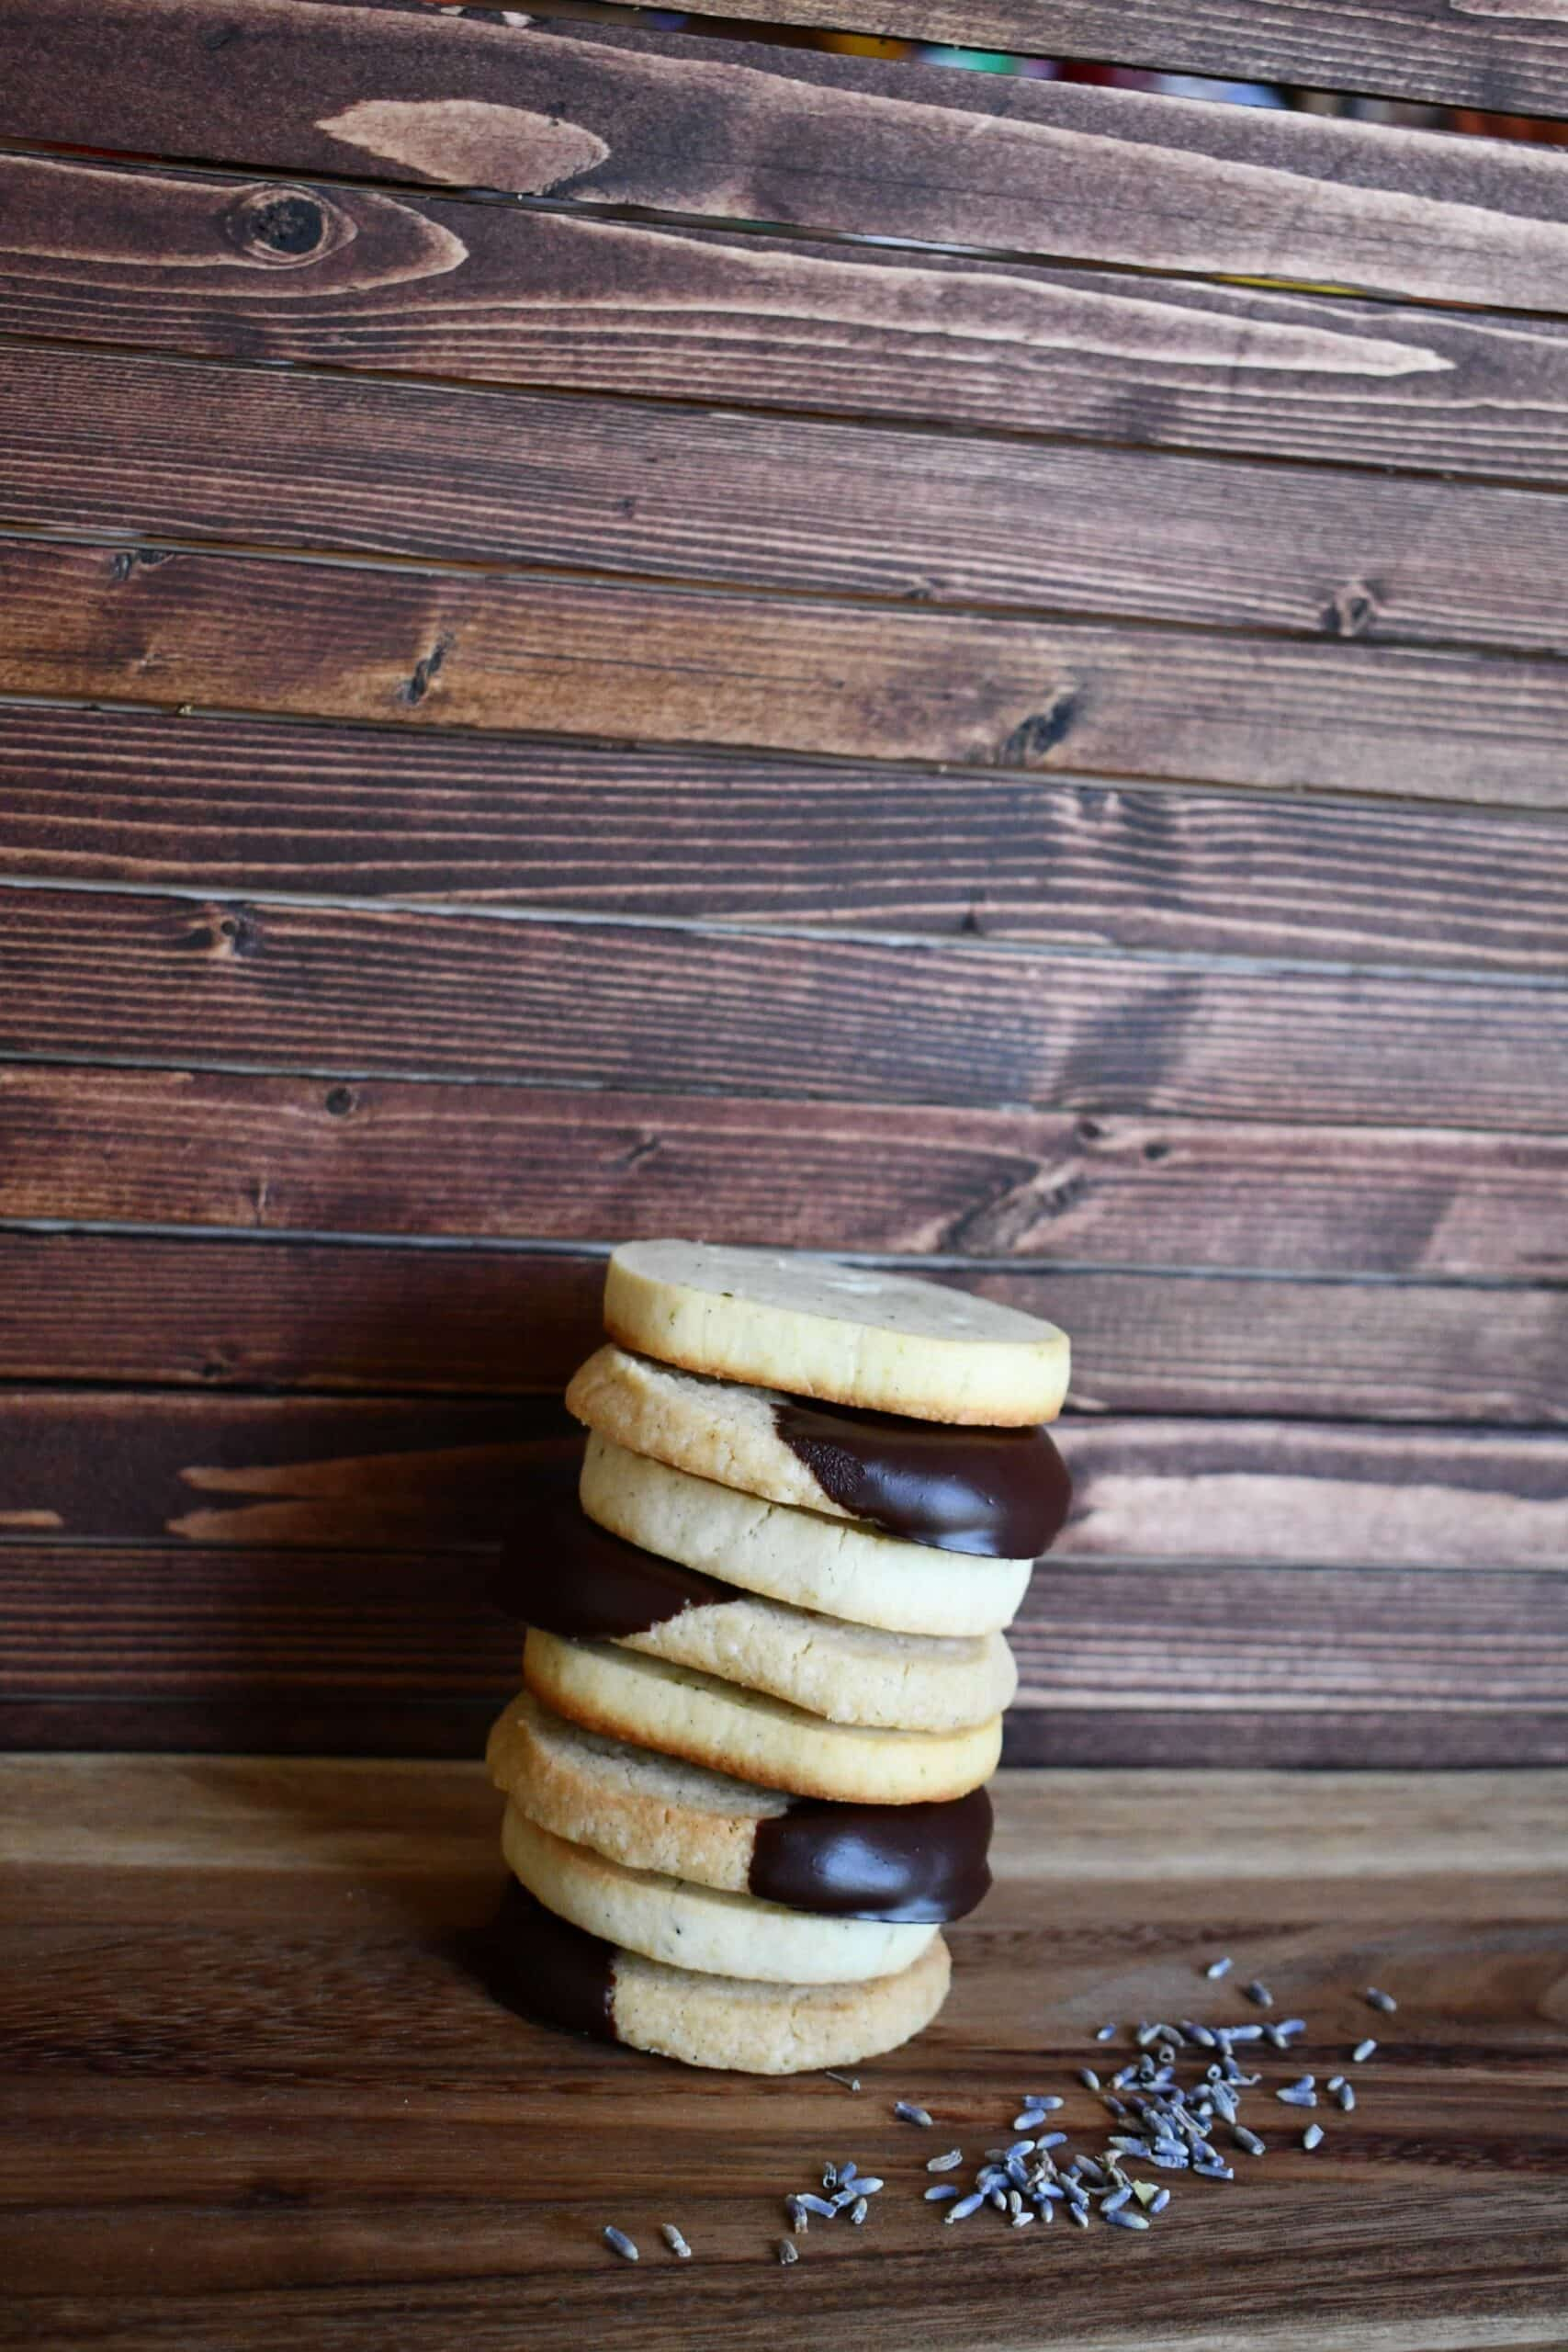 Chocolate Dipped Shortbread Cookies from the Magnolia Table Cookbook Prepared by KendellKreations